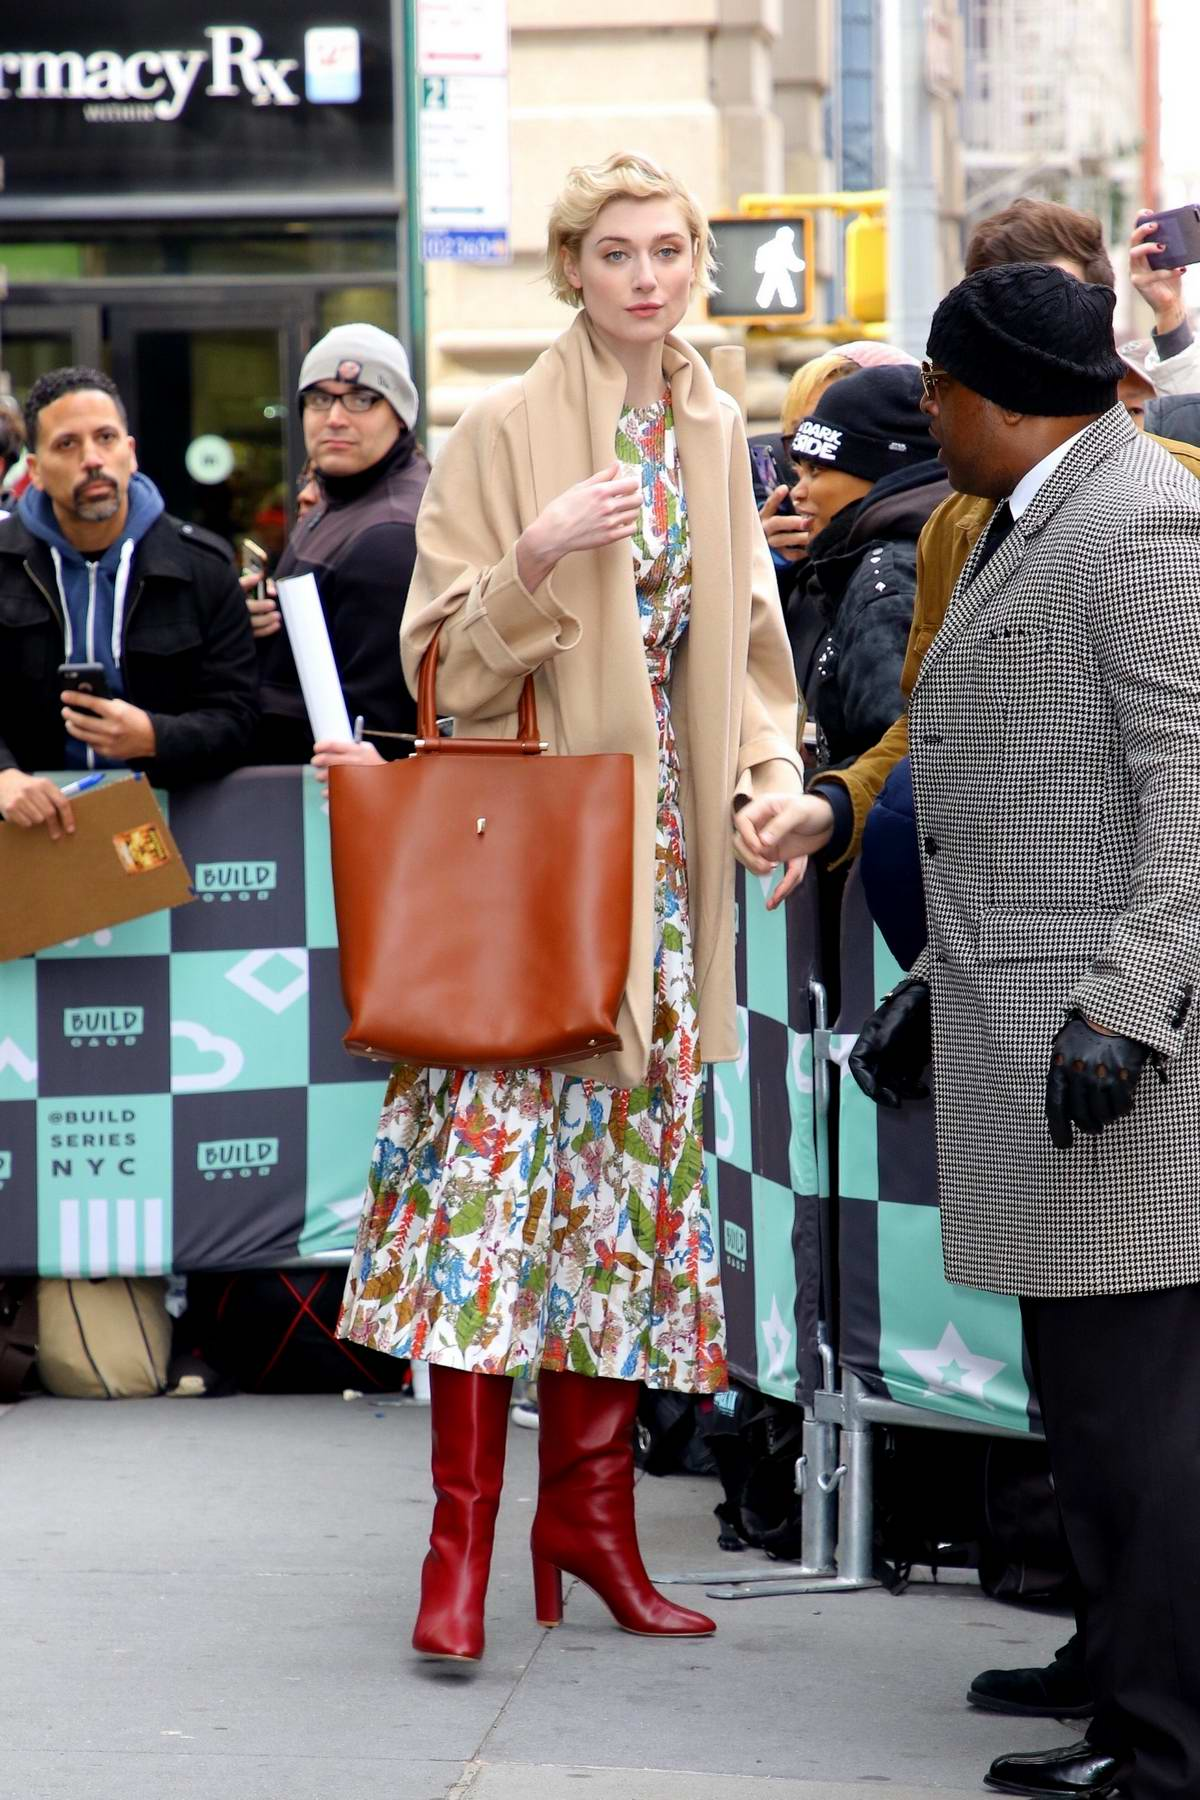 Elizabeth Debicki looks lovely in a floral dress with a pair of red boots as she visits AOL Build Series in New York City